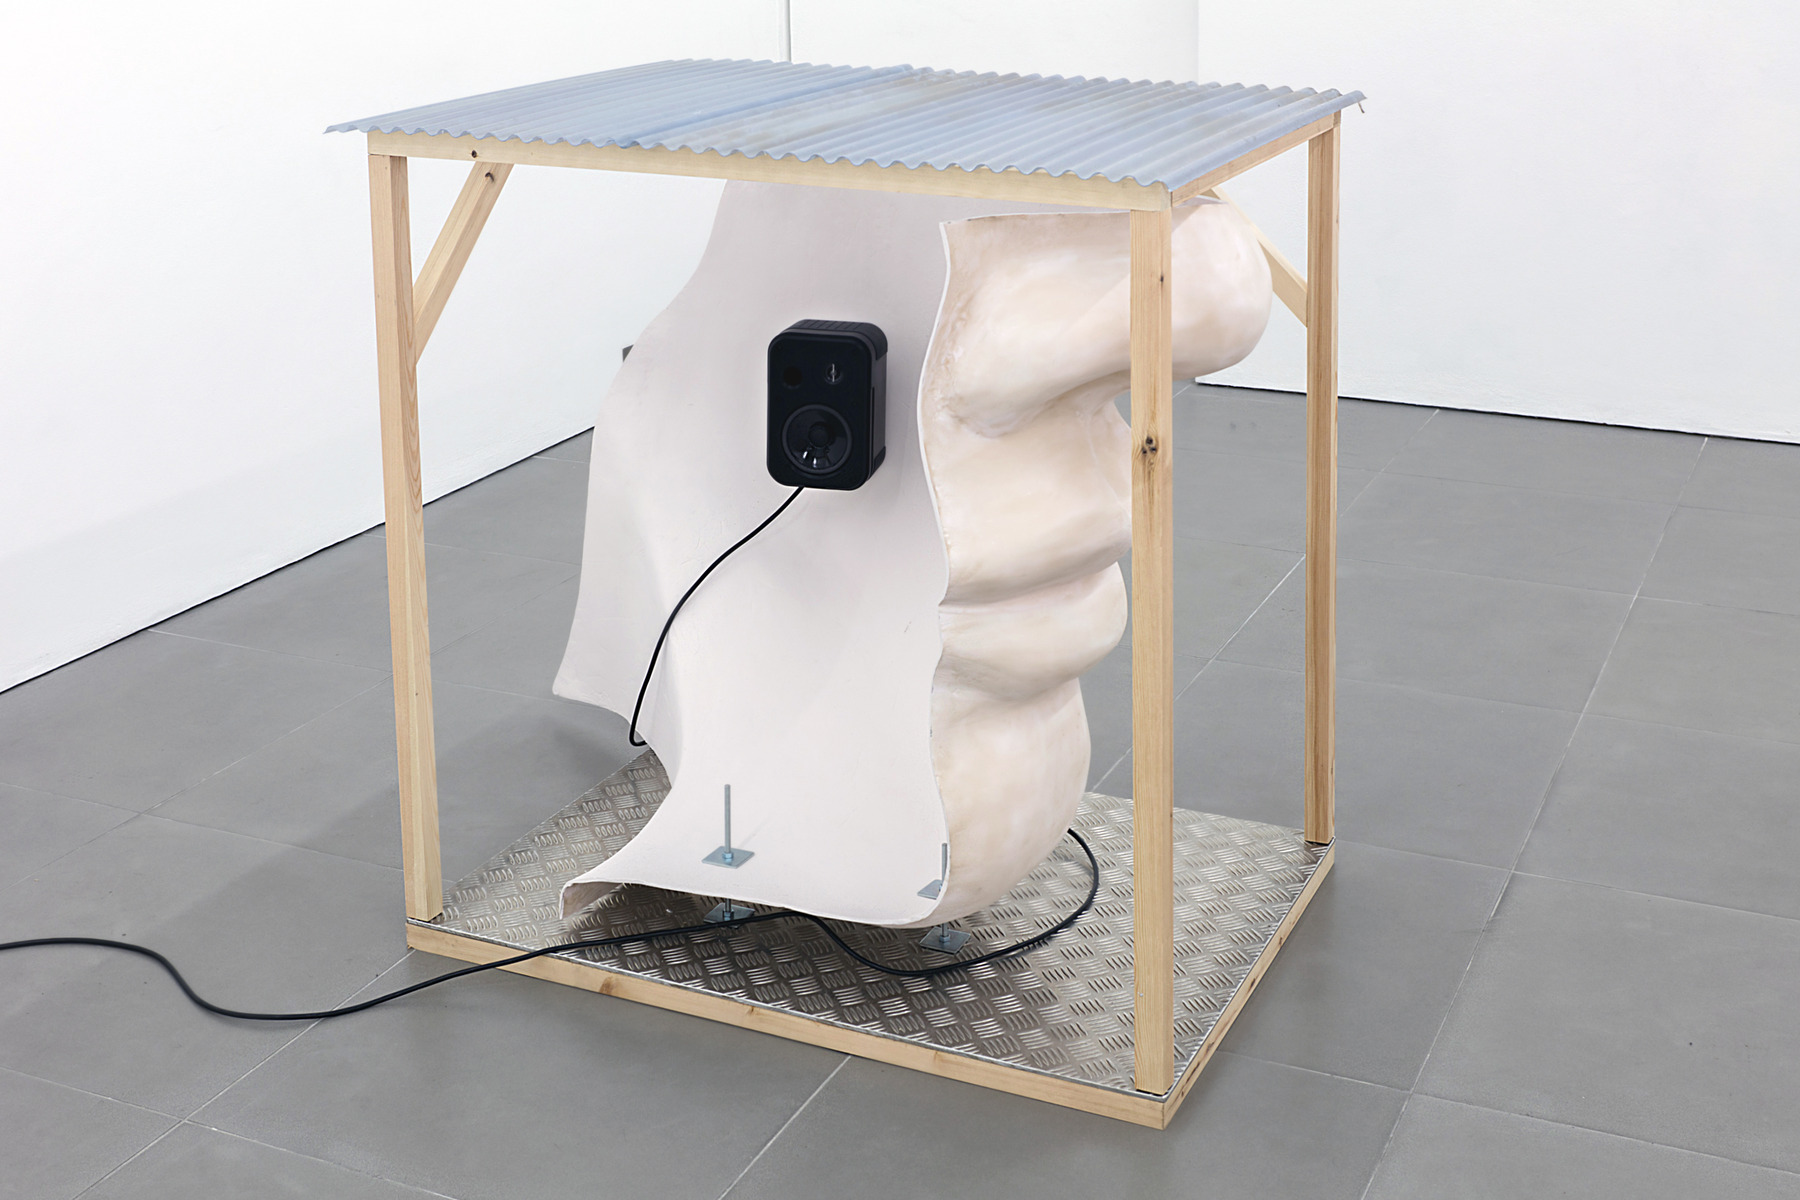 09. Anne de Vries, SUBMISSION 2015, wood, metal, fibreglass resin, audio, video